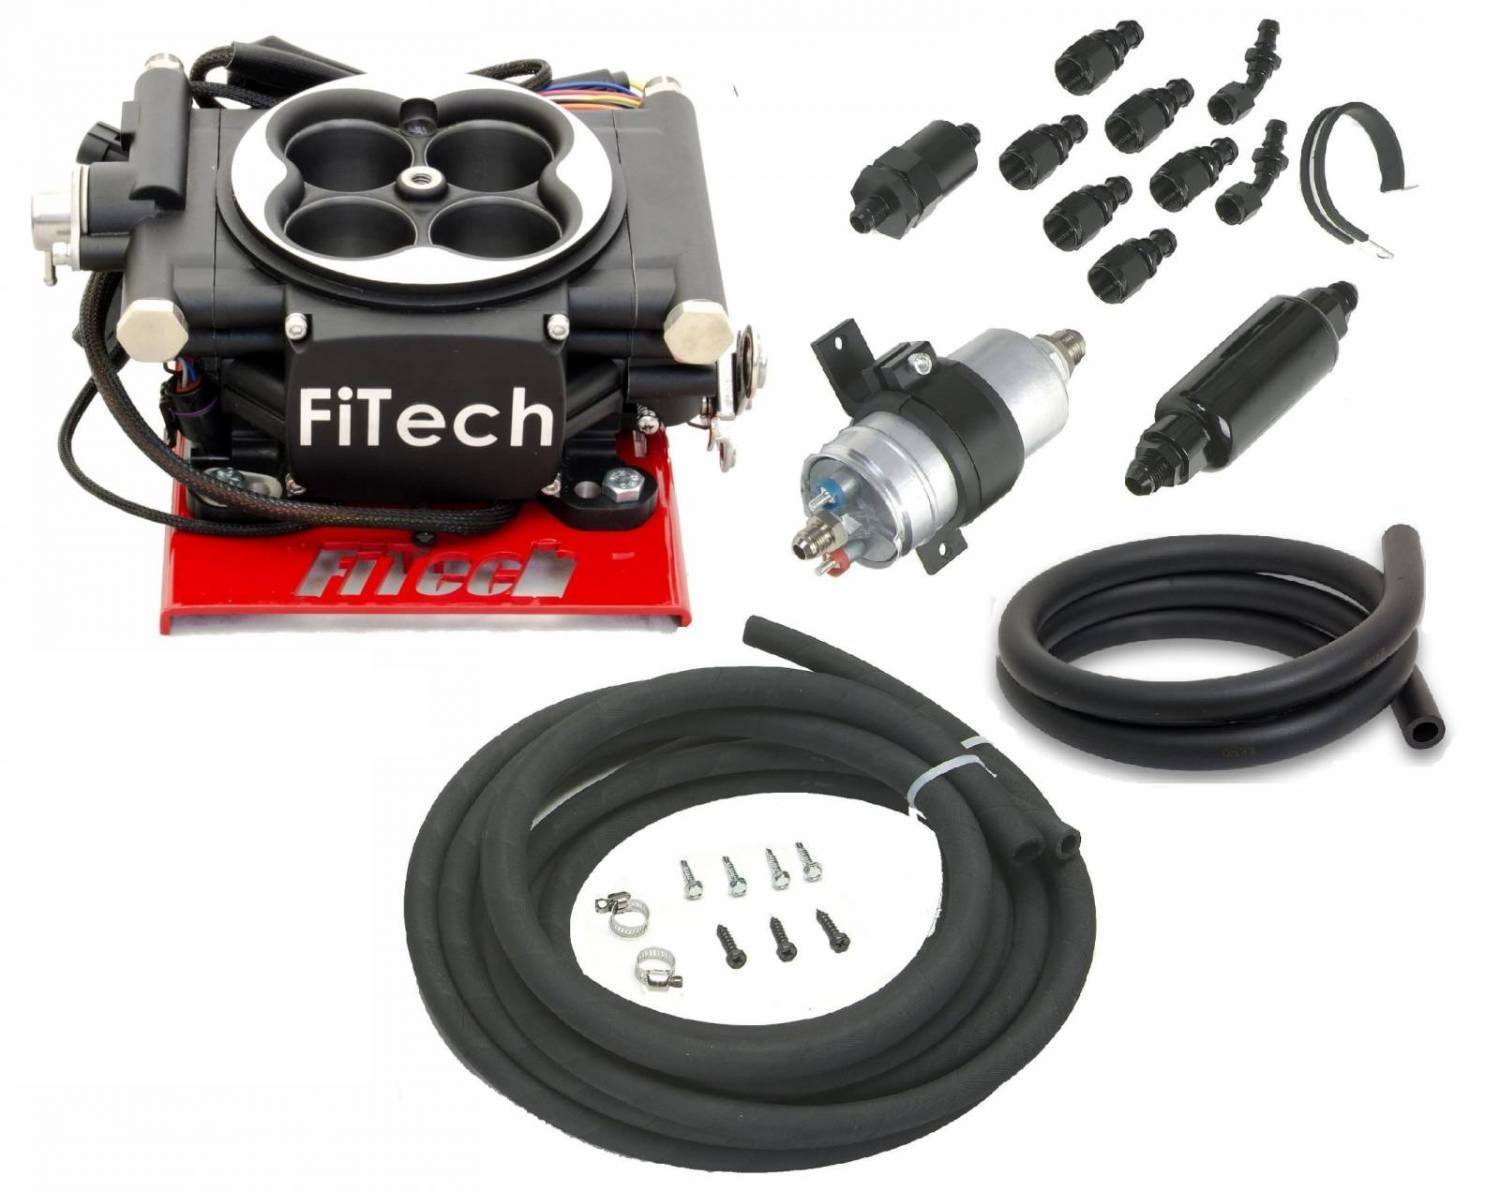 FTH-31002 - 600HP Carb Swap EFI Master Package with In-Line ... on